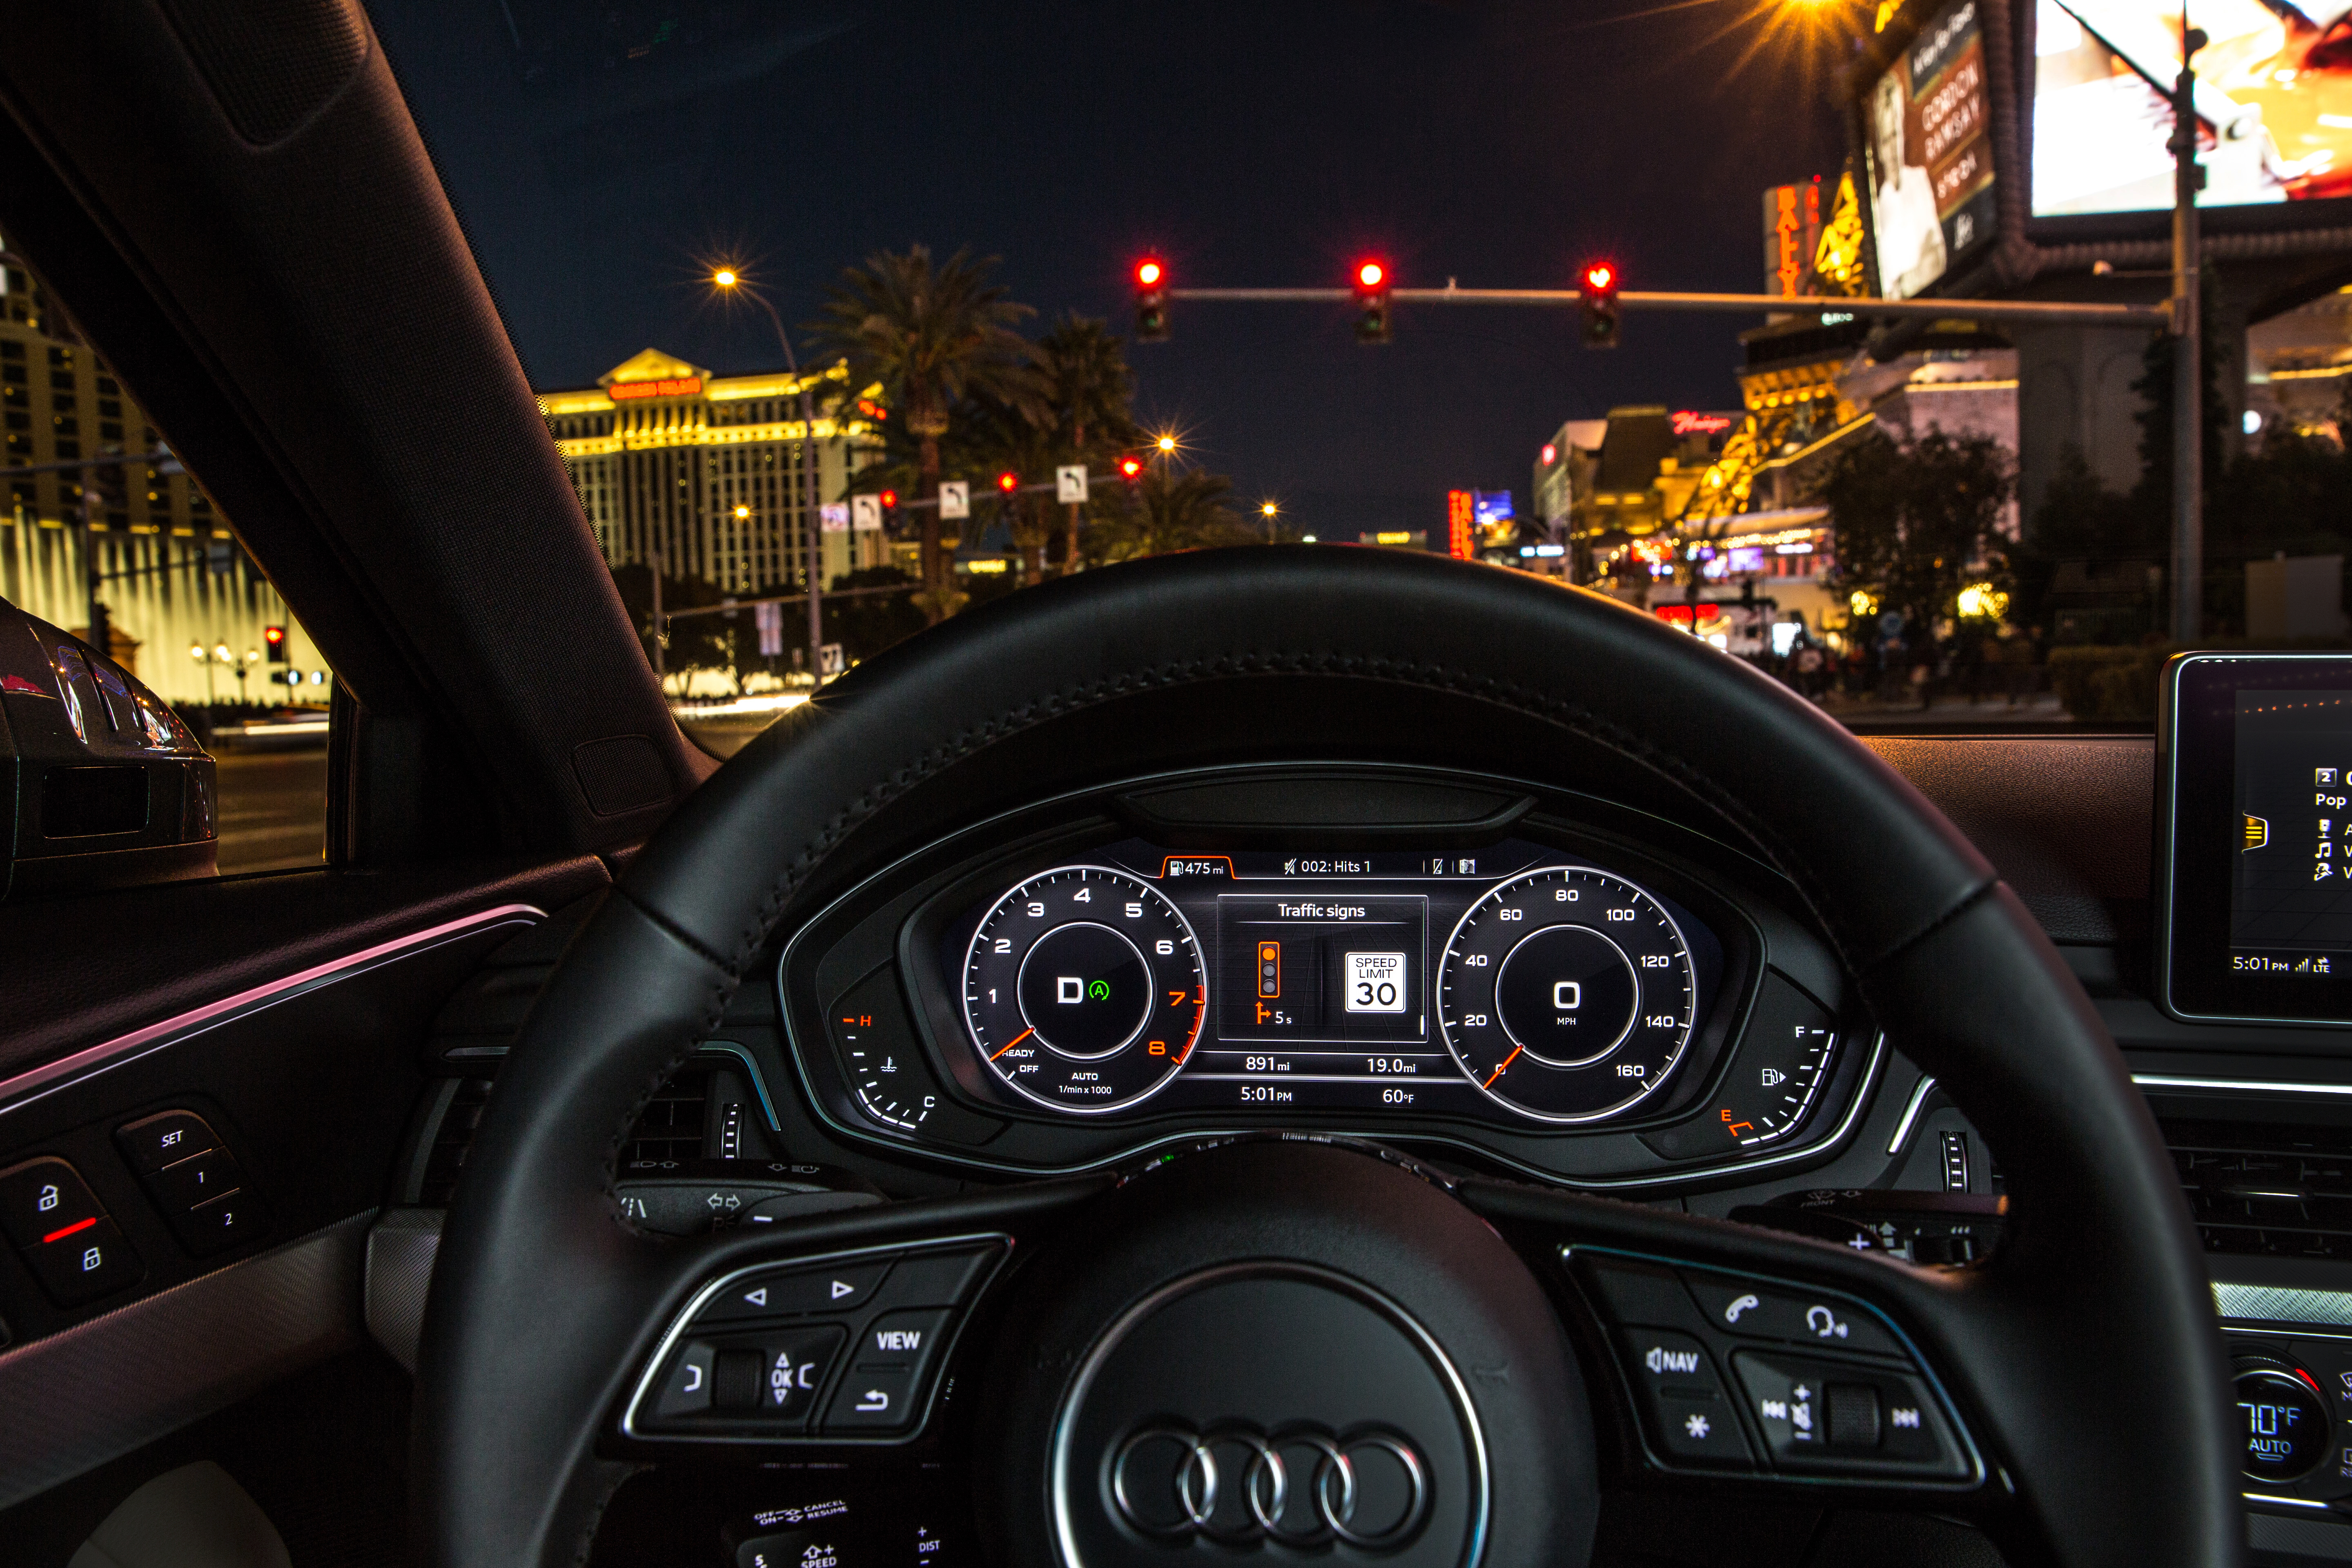 This Audi Knows When The Lights Going To Change The Verge - Car signals